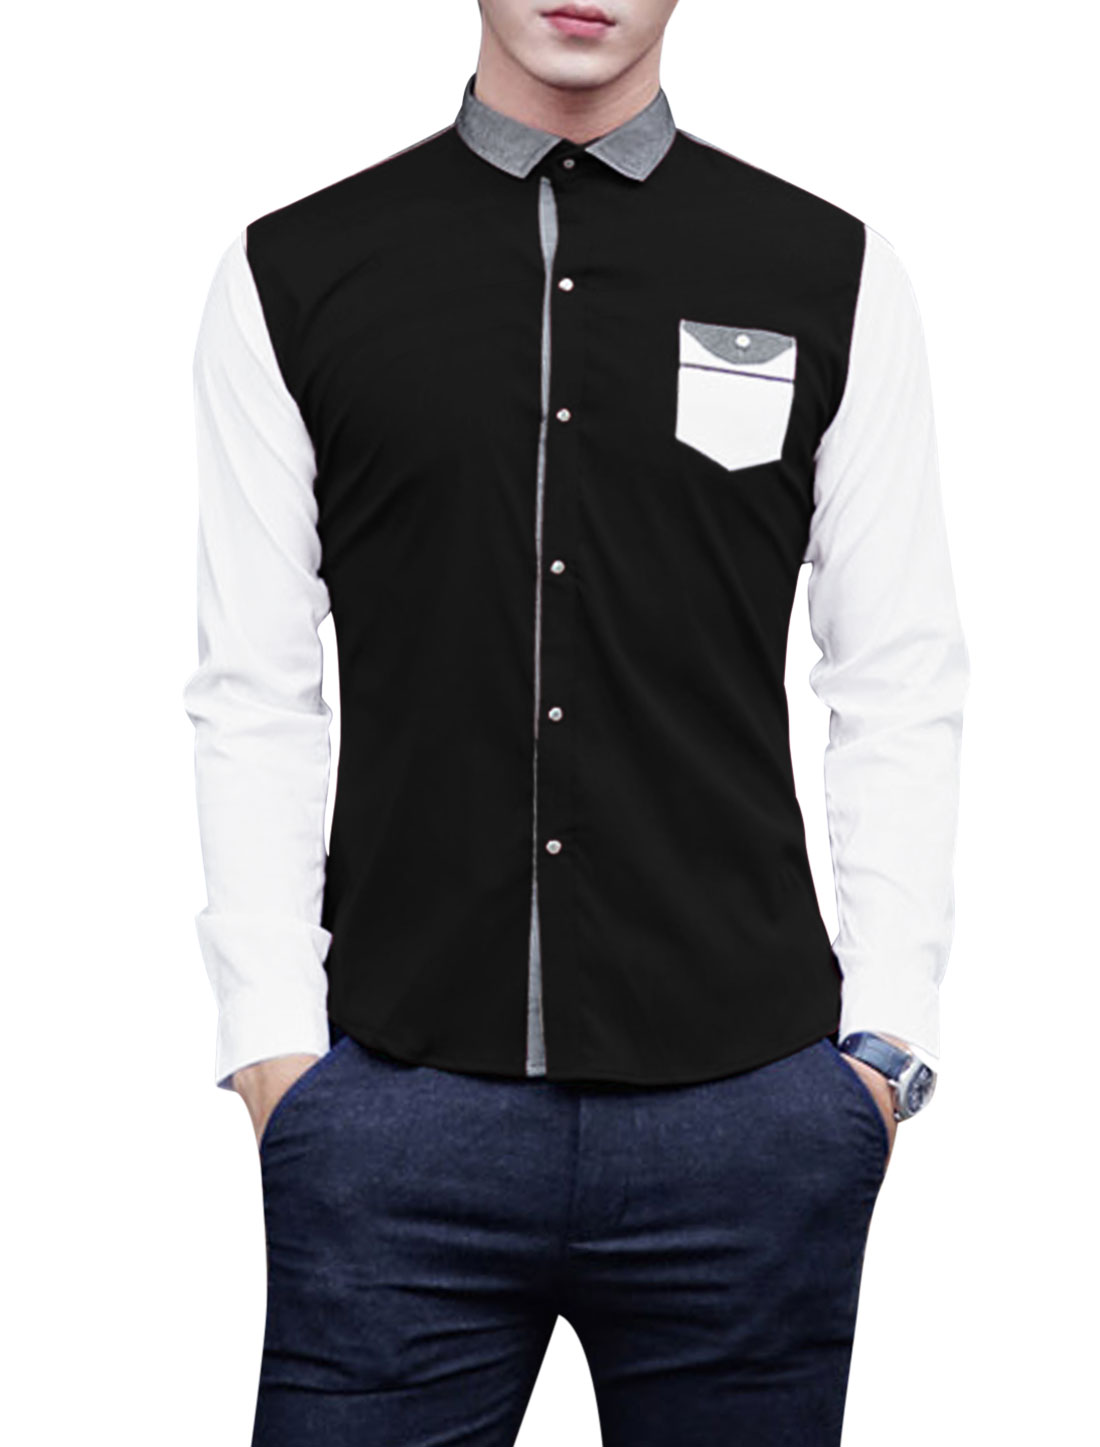 Men Contrast Long Sleeves Flap Chest Pocket Leisure Shirt Black M